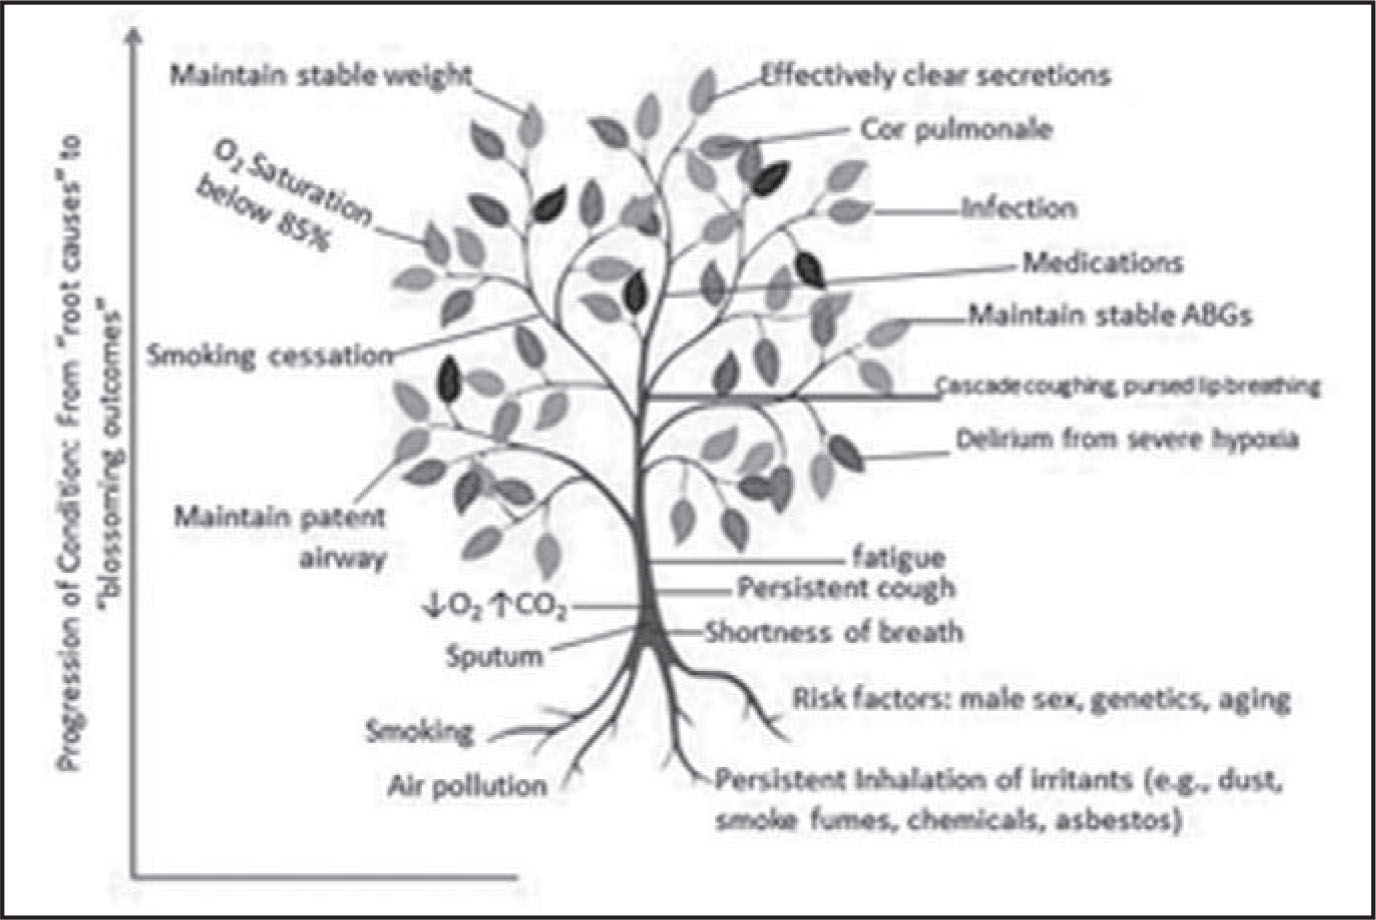 Use Of The Knowledge Tree As A Mind Map In A Gerontological Course For Undergraduate Nursing Students likewise Control flow chart also Risk Factor moreover 704354821 in addition Cycle Of Abuse. on risk management concept map